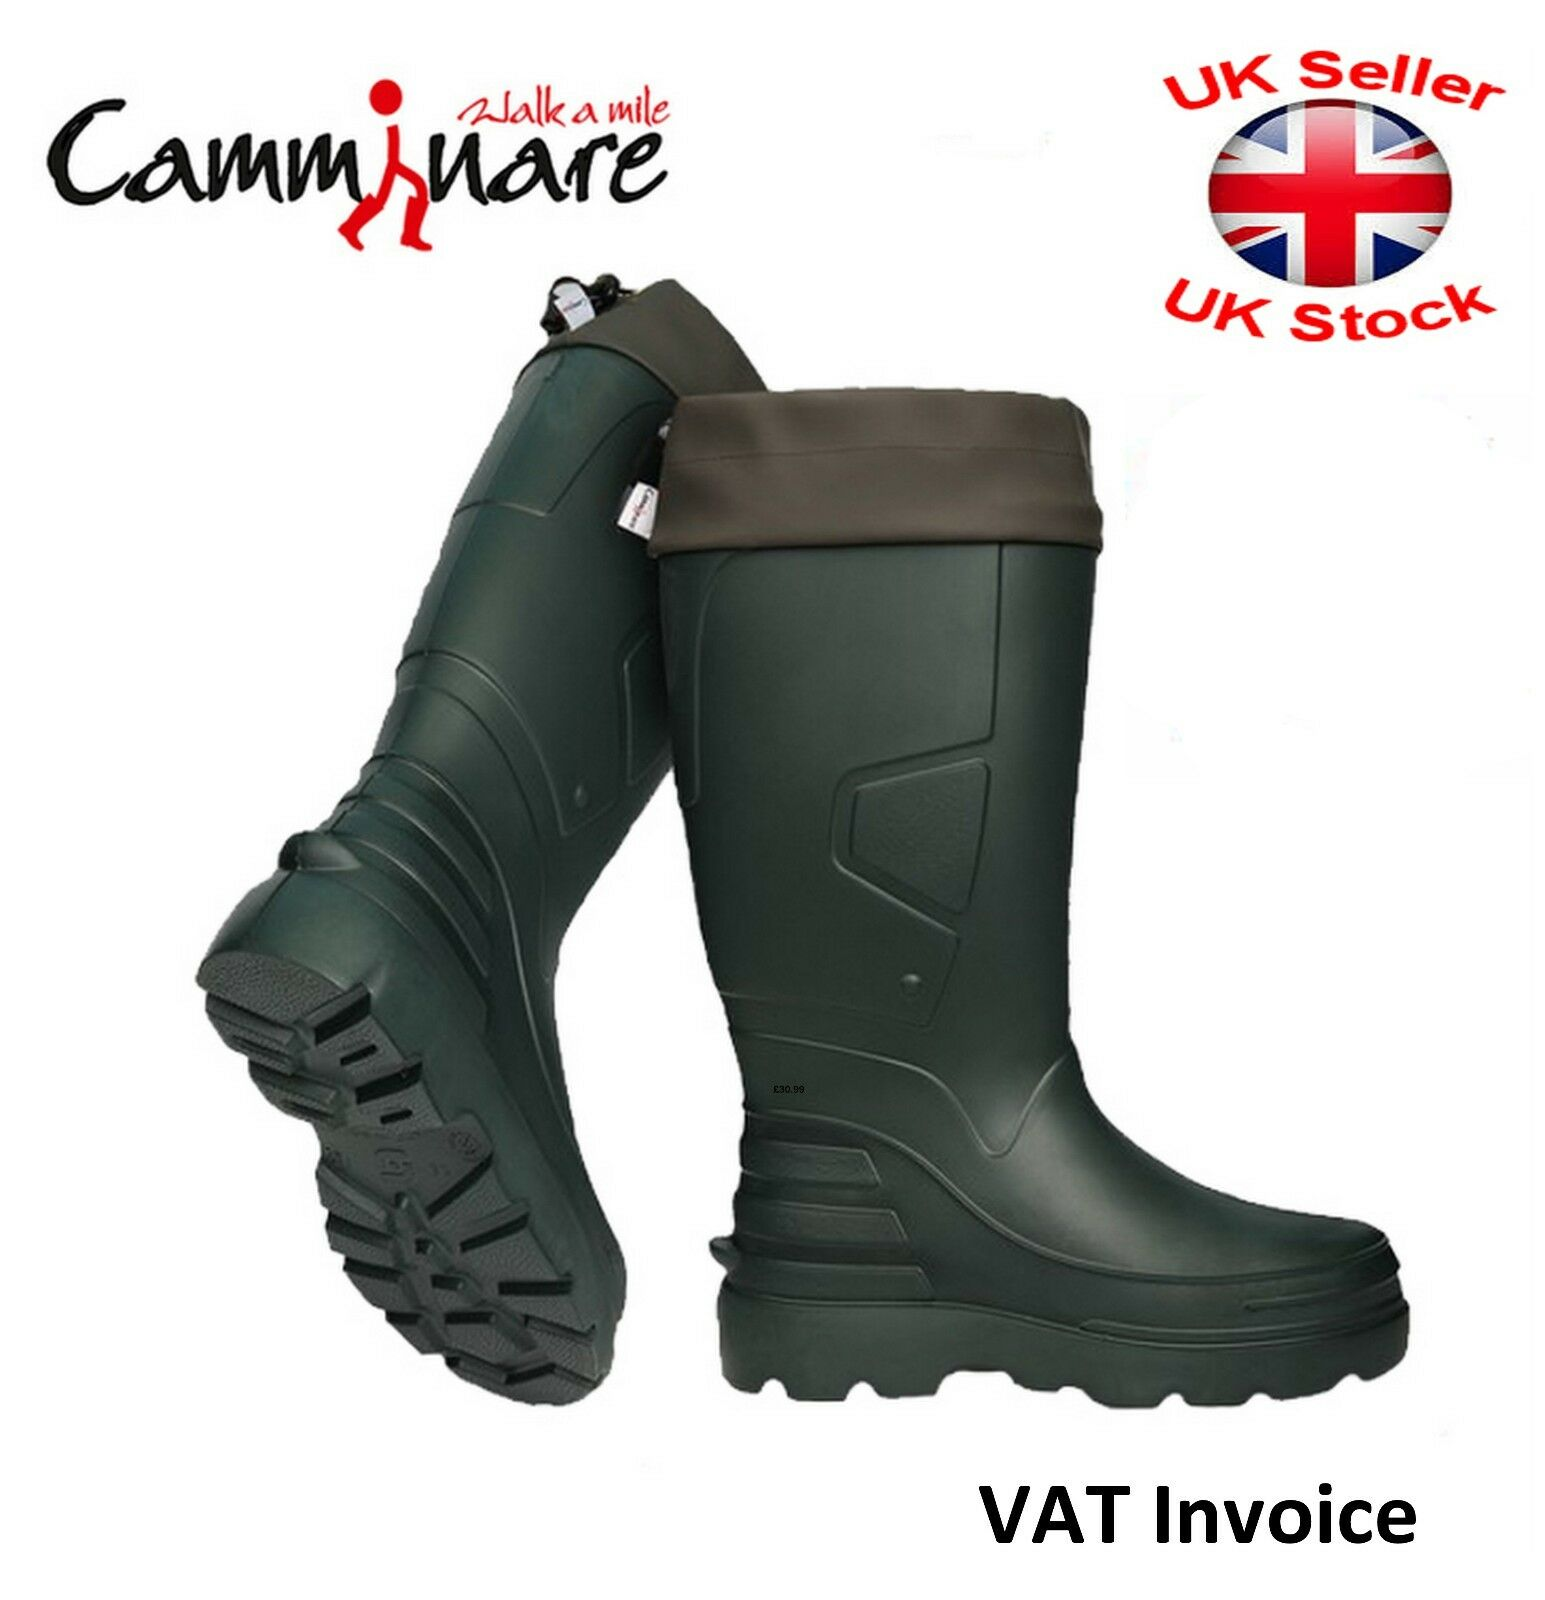 Camminare Thermal LIGHTWEIGHT EVA MATERIAL Wellies Wellingtons Boots Forester